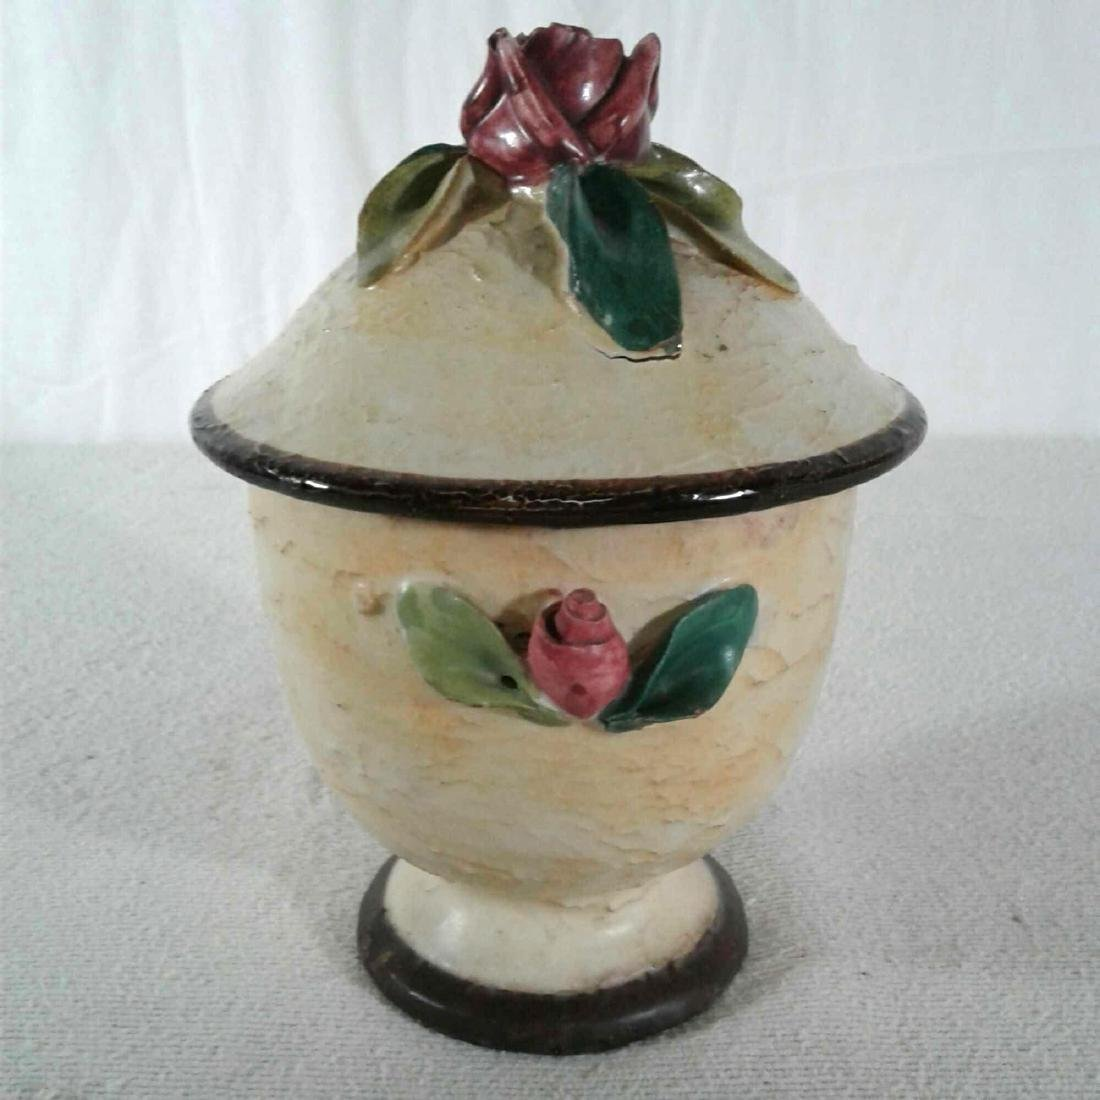 Ceramic Candy Dish with Rose Lid